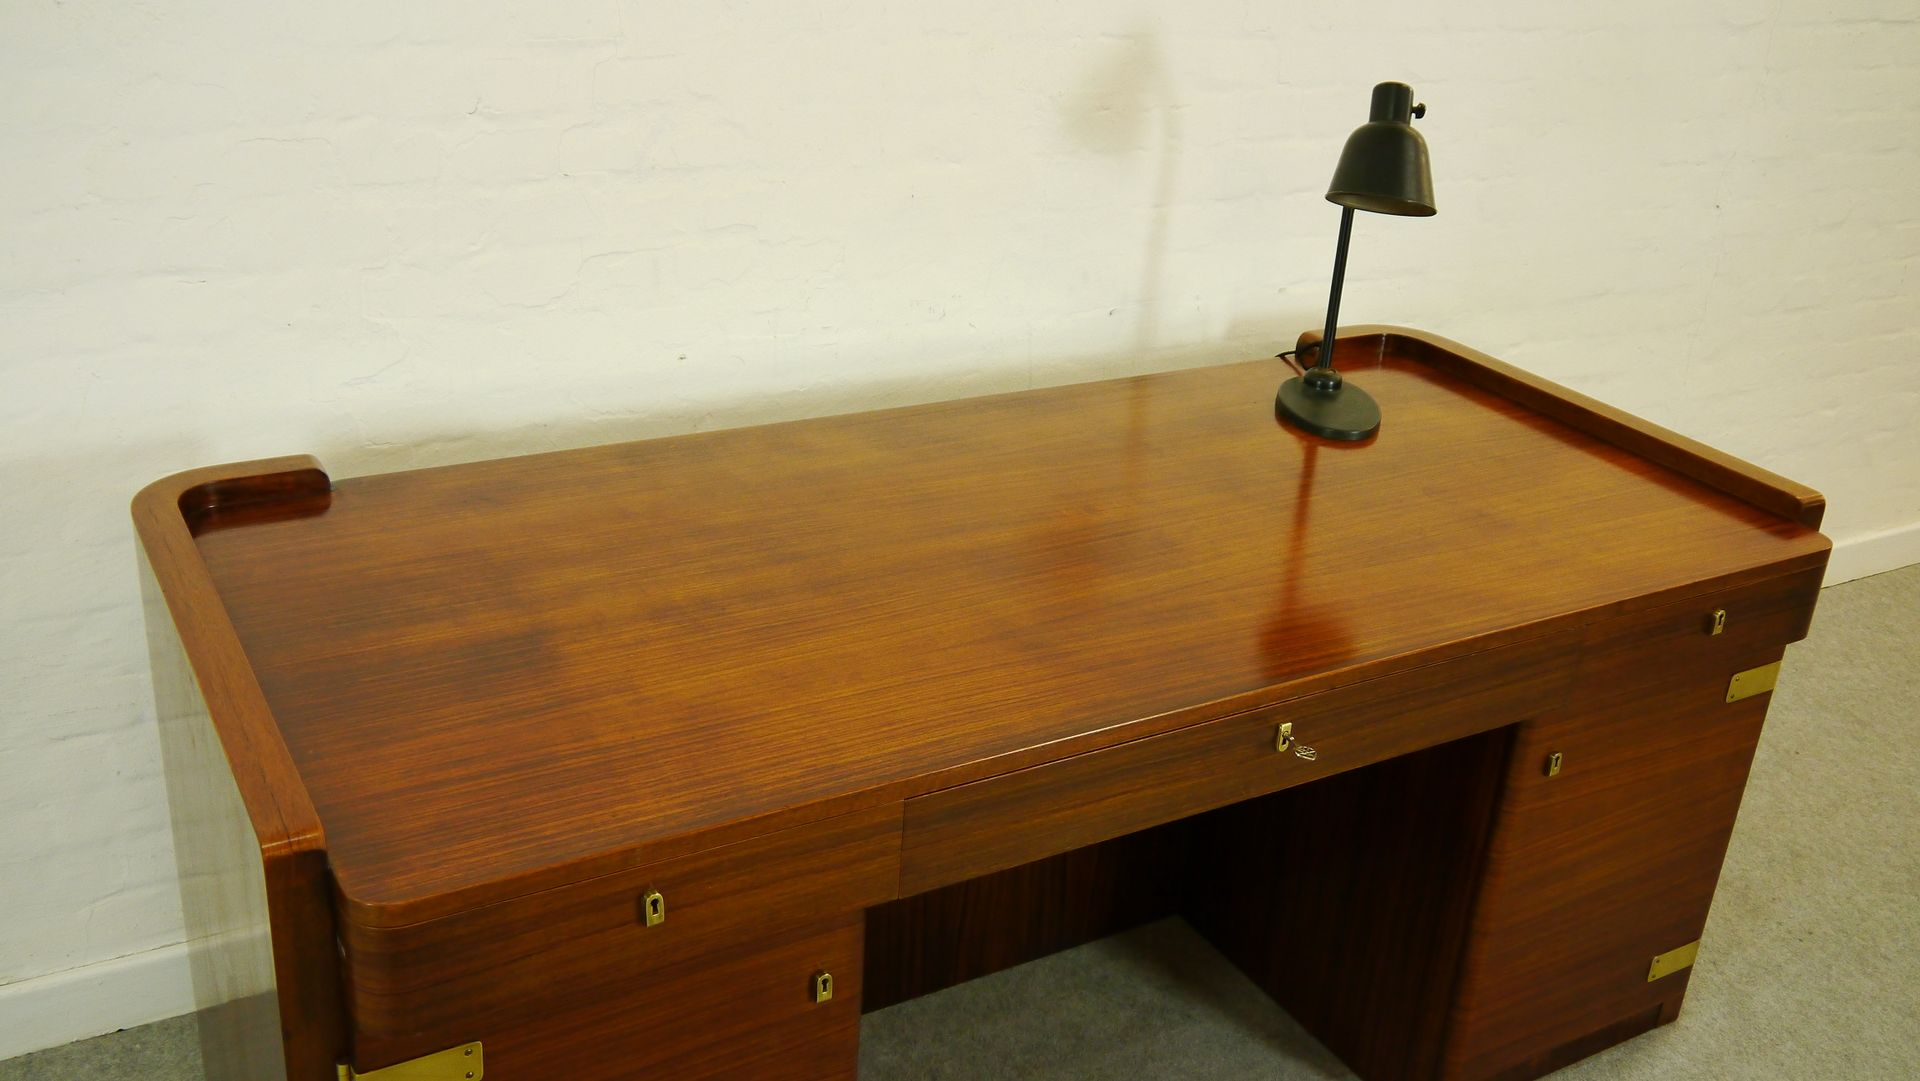 bauhaus art deco desk by bruno paul for wk m bel 1930s for sale at pamono. Black Bedroom Furniture Sets. Home Design Ideas